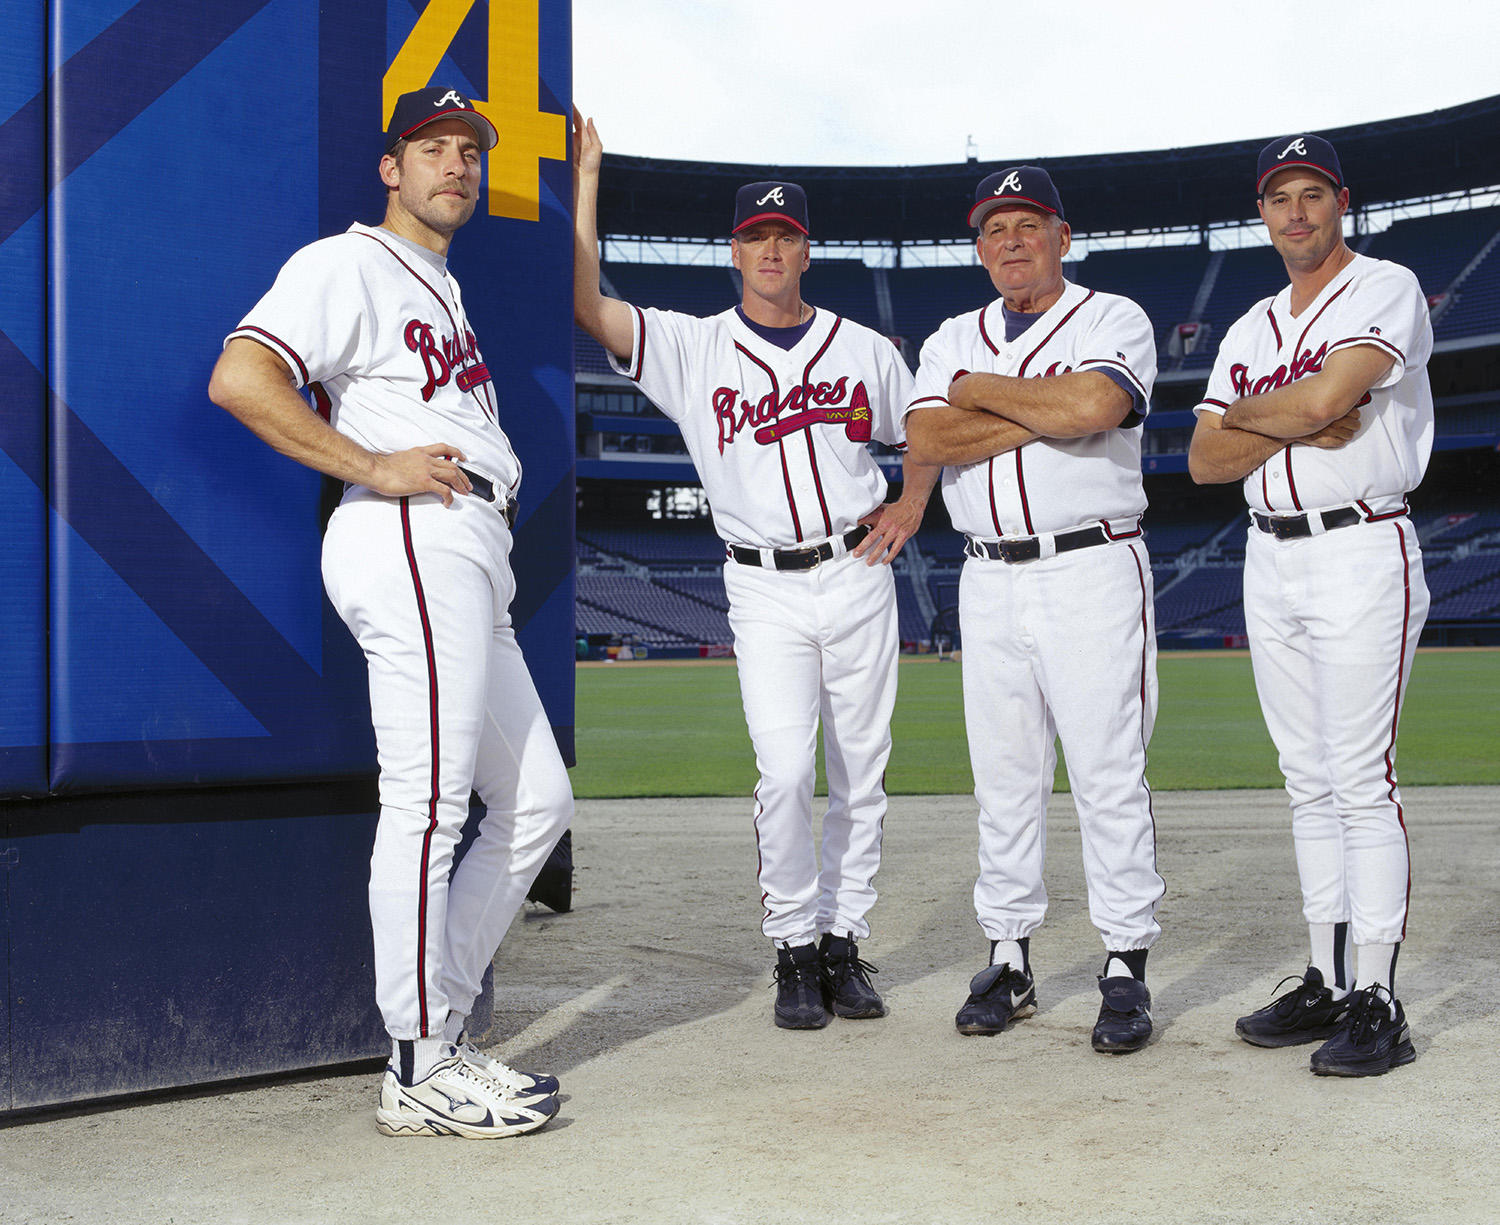 Chipper Jones joins five other Atlanta Braves players, managers and executives from the 1990s, four of which are pictured above: from left, John Smoltz, Tom Glavine, manager Bobby Cox and Greg Maddux. (National Baseball Hall of Fame and Museum)